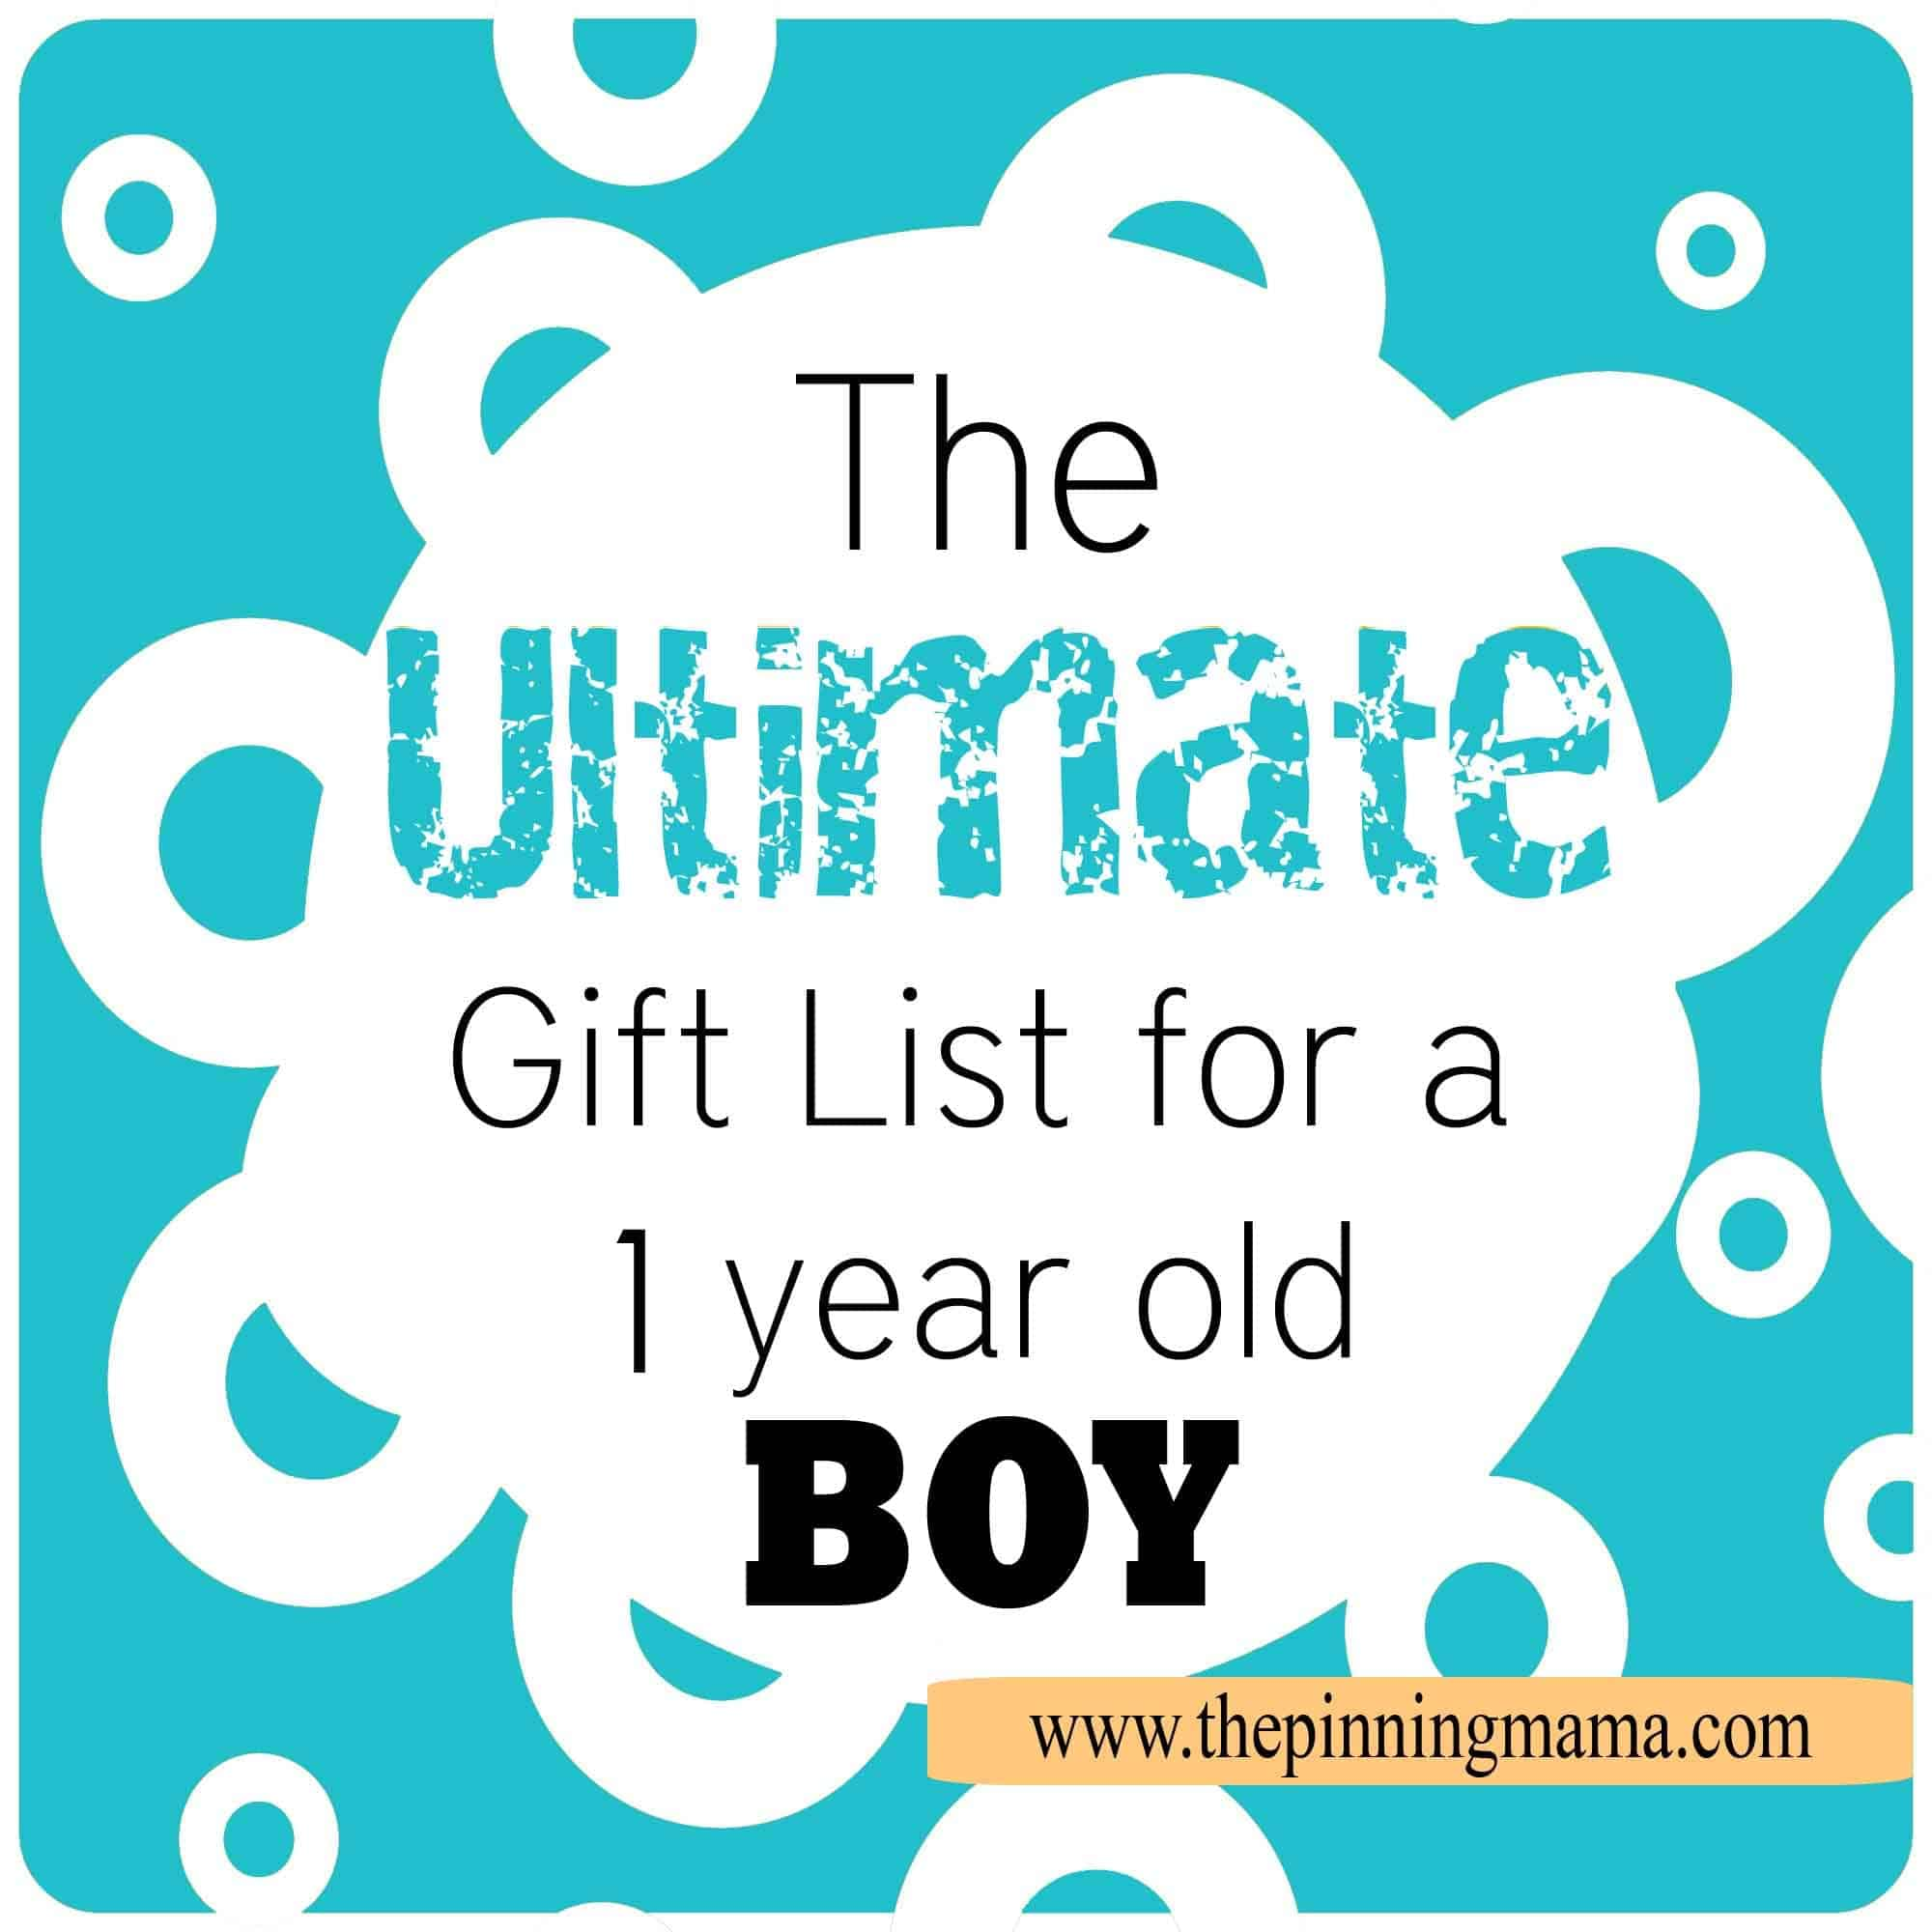 Beautiful 1 Year Boy Etsy Gifts Ultimate List Gift Ideas A Year Pinning Mama Gifts One Year S Ultimate Gift List 1 Year Son baby Gifts For 1 Year Old